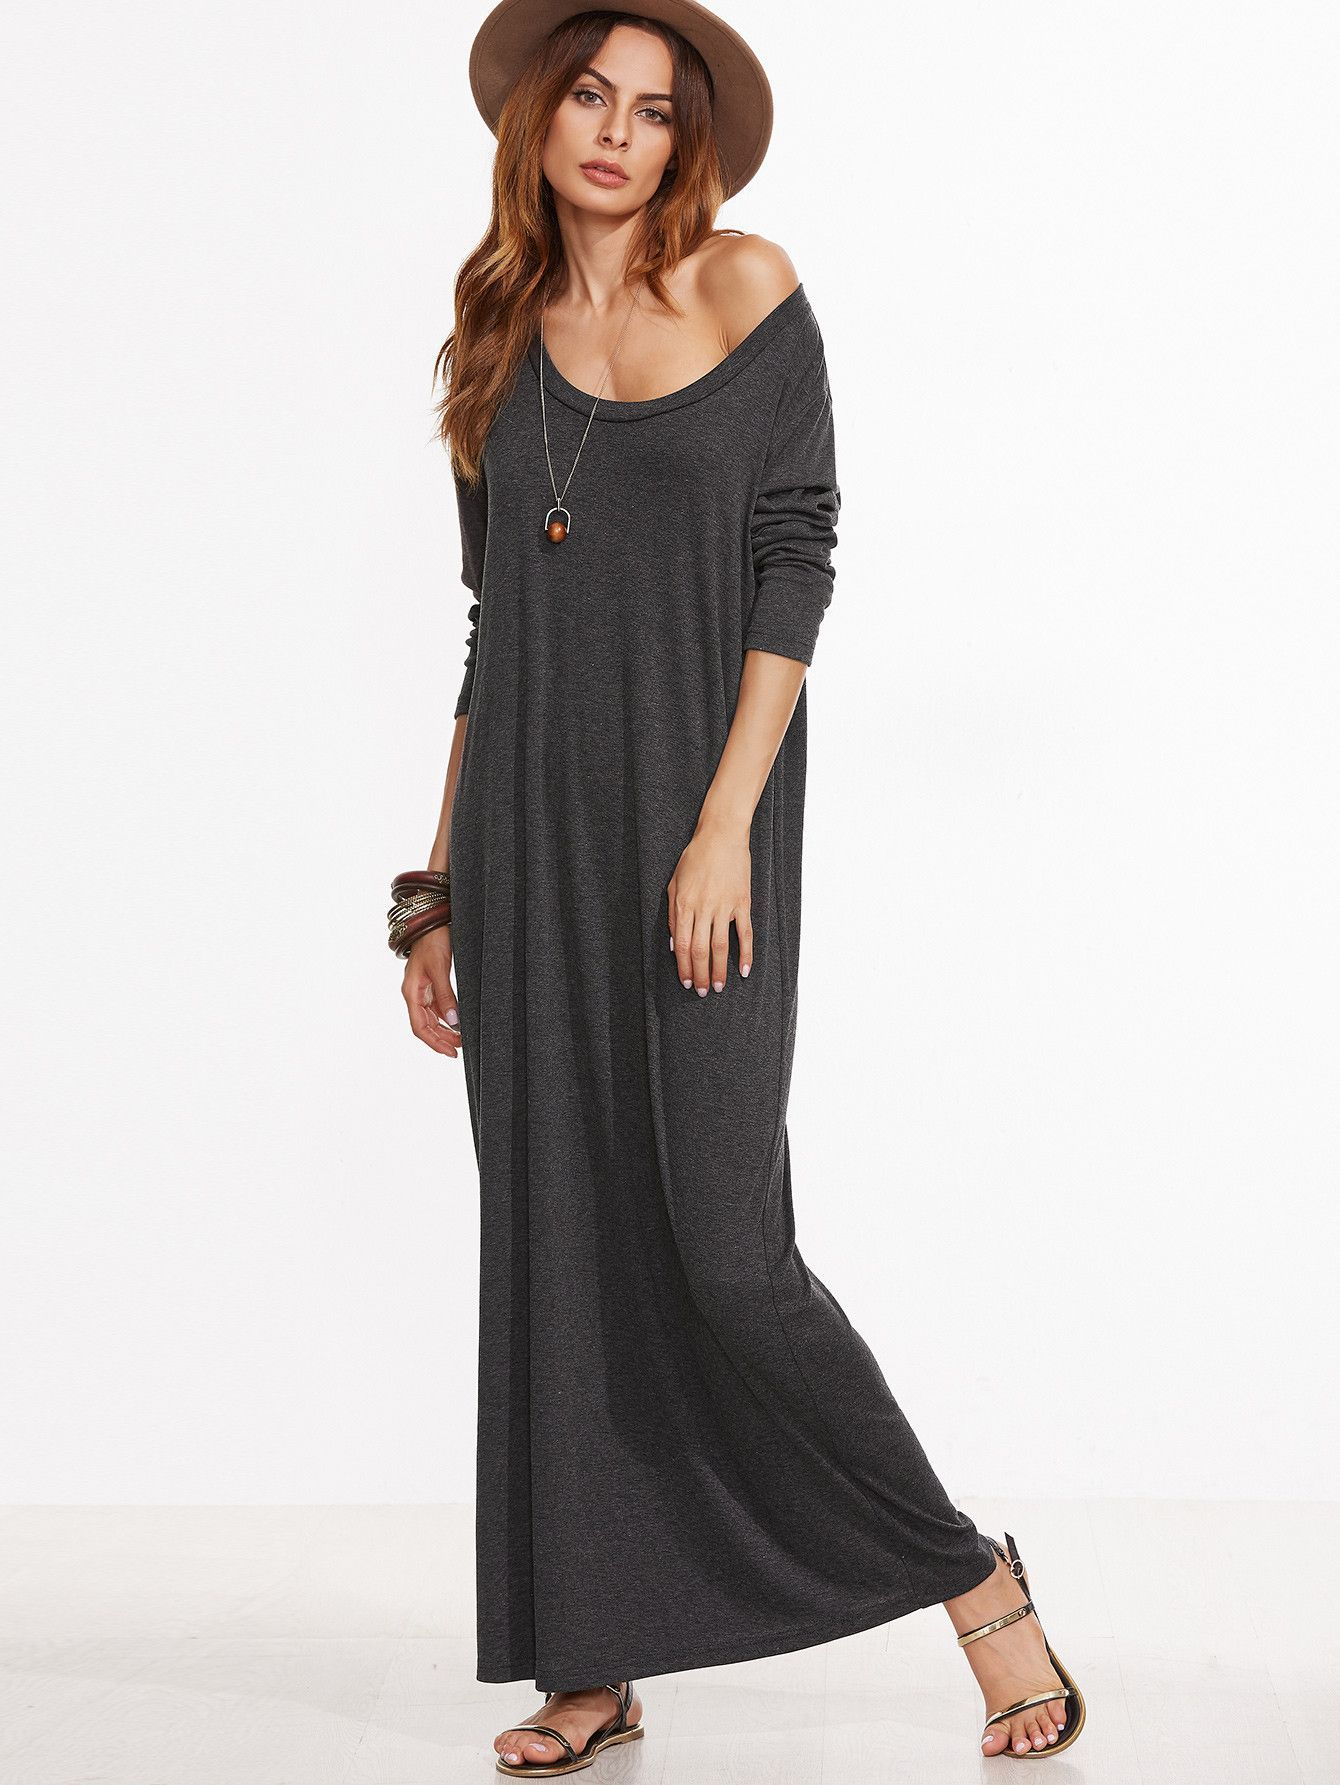 490fdca943b Heather Grey Scoop Neck Maxi Dress